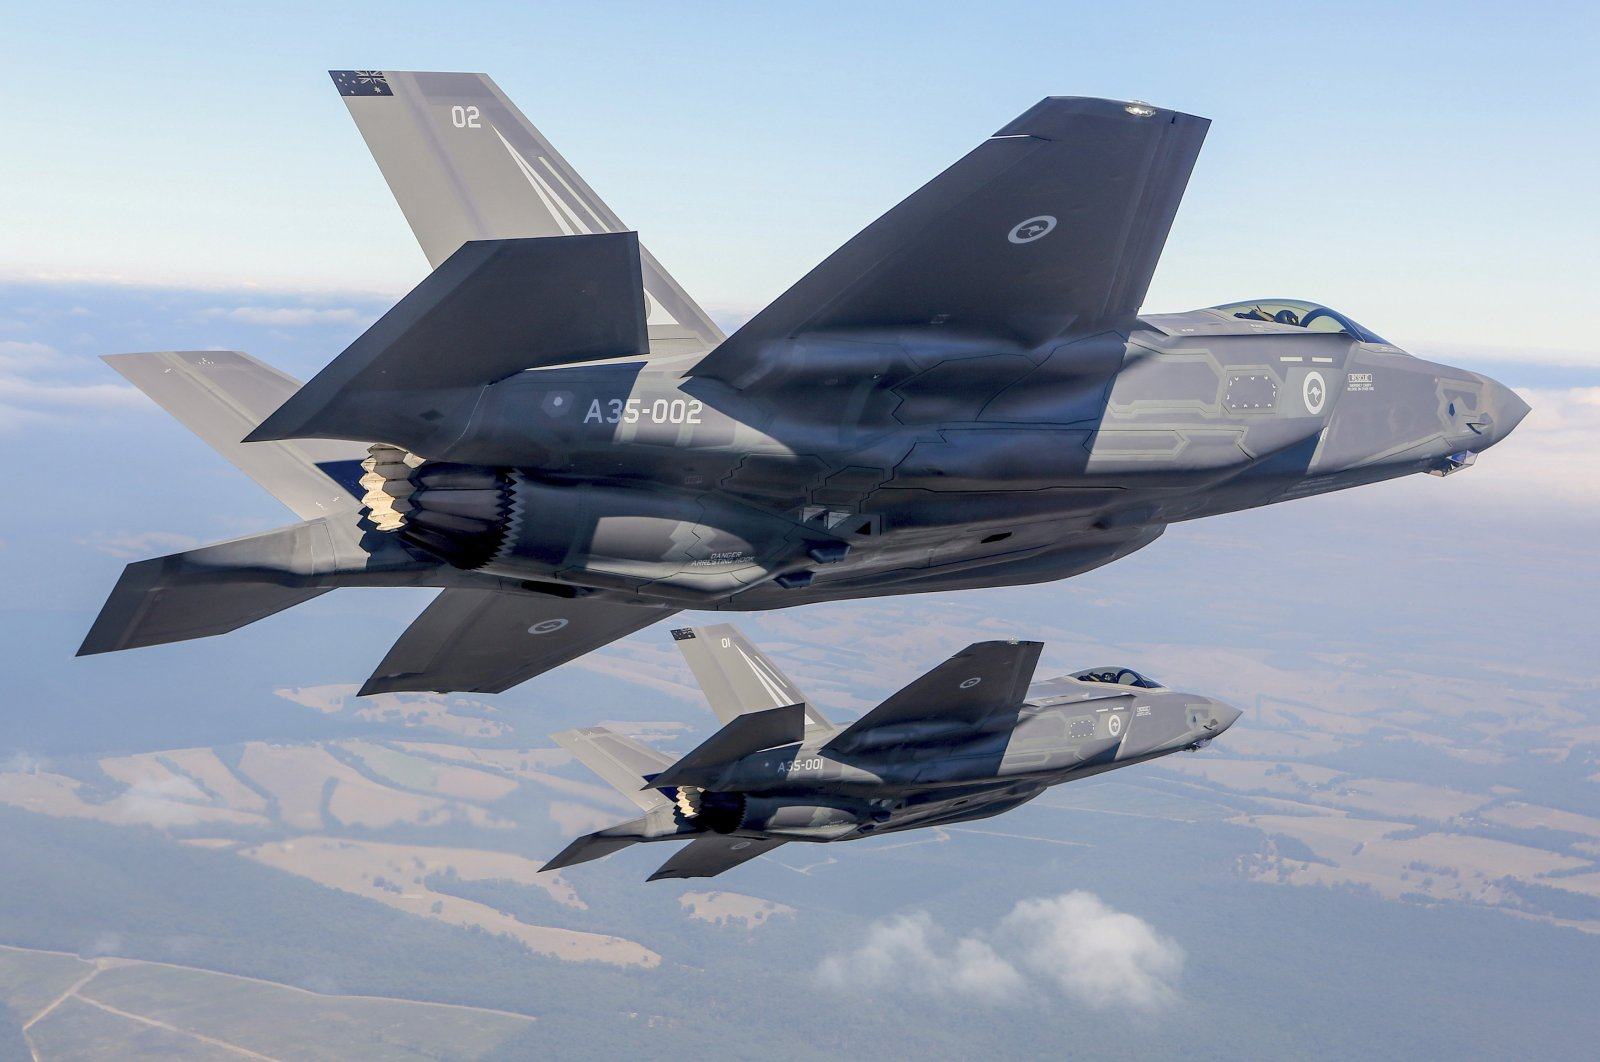 Two Lockheed Martin Corp F-35 stealth fighter jets fly during a display at the Avalon Airshow in Victoria, Australia, March 3, 2017. (Australian Defense Force/ Reuters Photo)